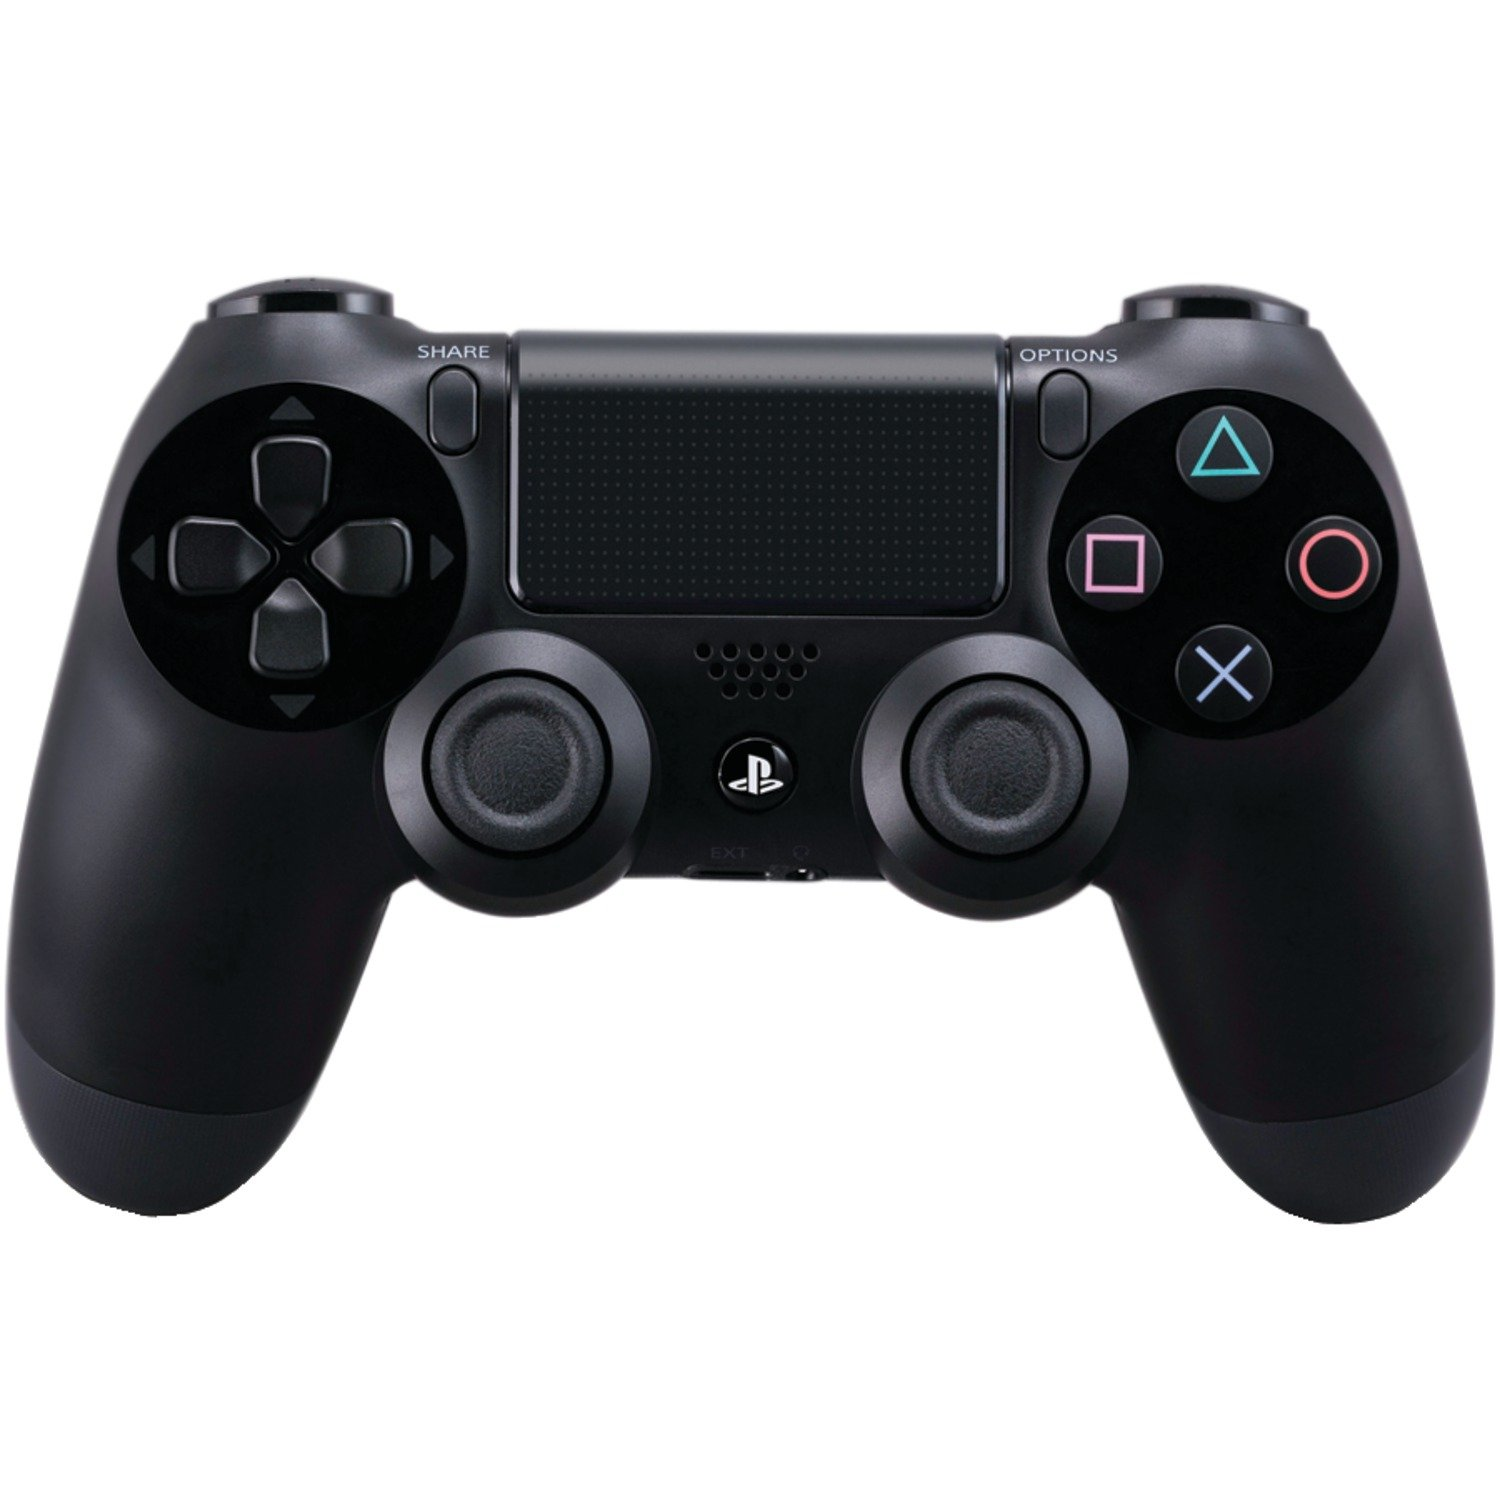 dualshock 4 wireless controller for playstation 4 lazada. Black Bedroom Furniture Sets. Home Design Ideas